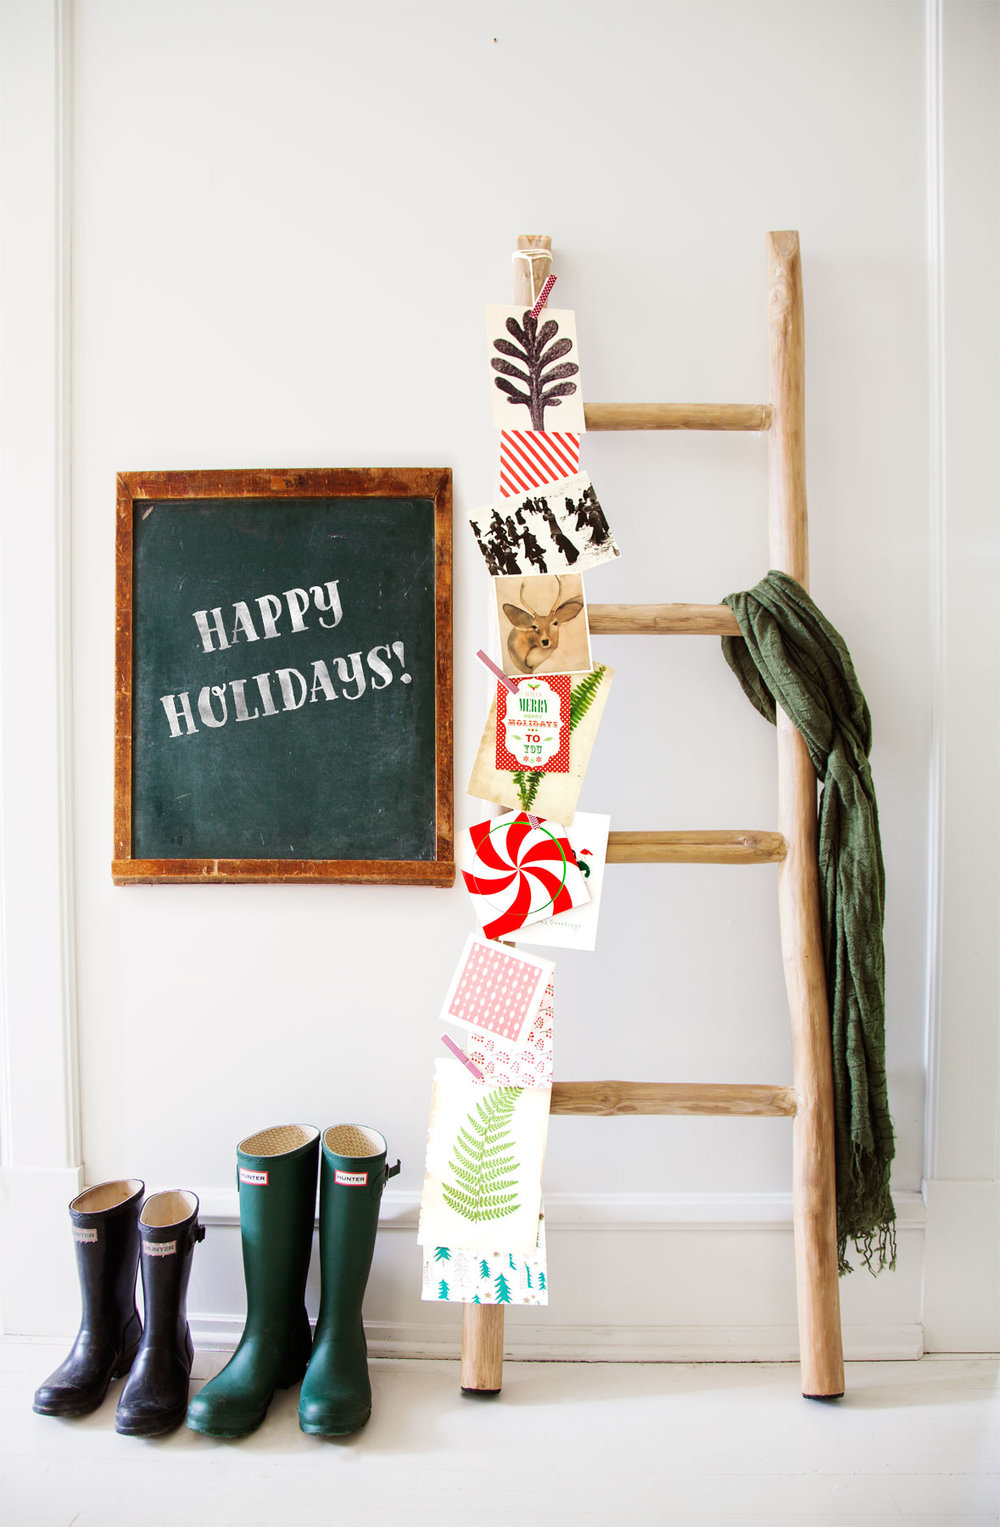 1) Use Holiday Cards as décor! Attach cards to a shelf, on string with laundry pins, to ladders or even in a tobacco basket to fill your kitchen, entry or living areas with cheer from those you love the most! They are already colorful and so festive! No need to add anything else! -